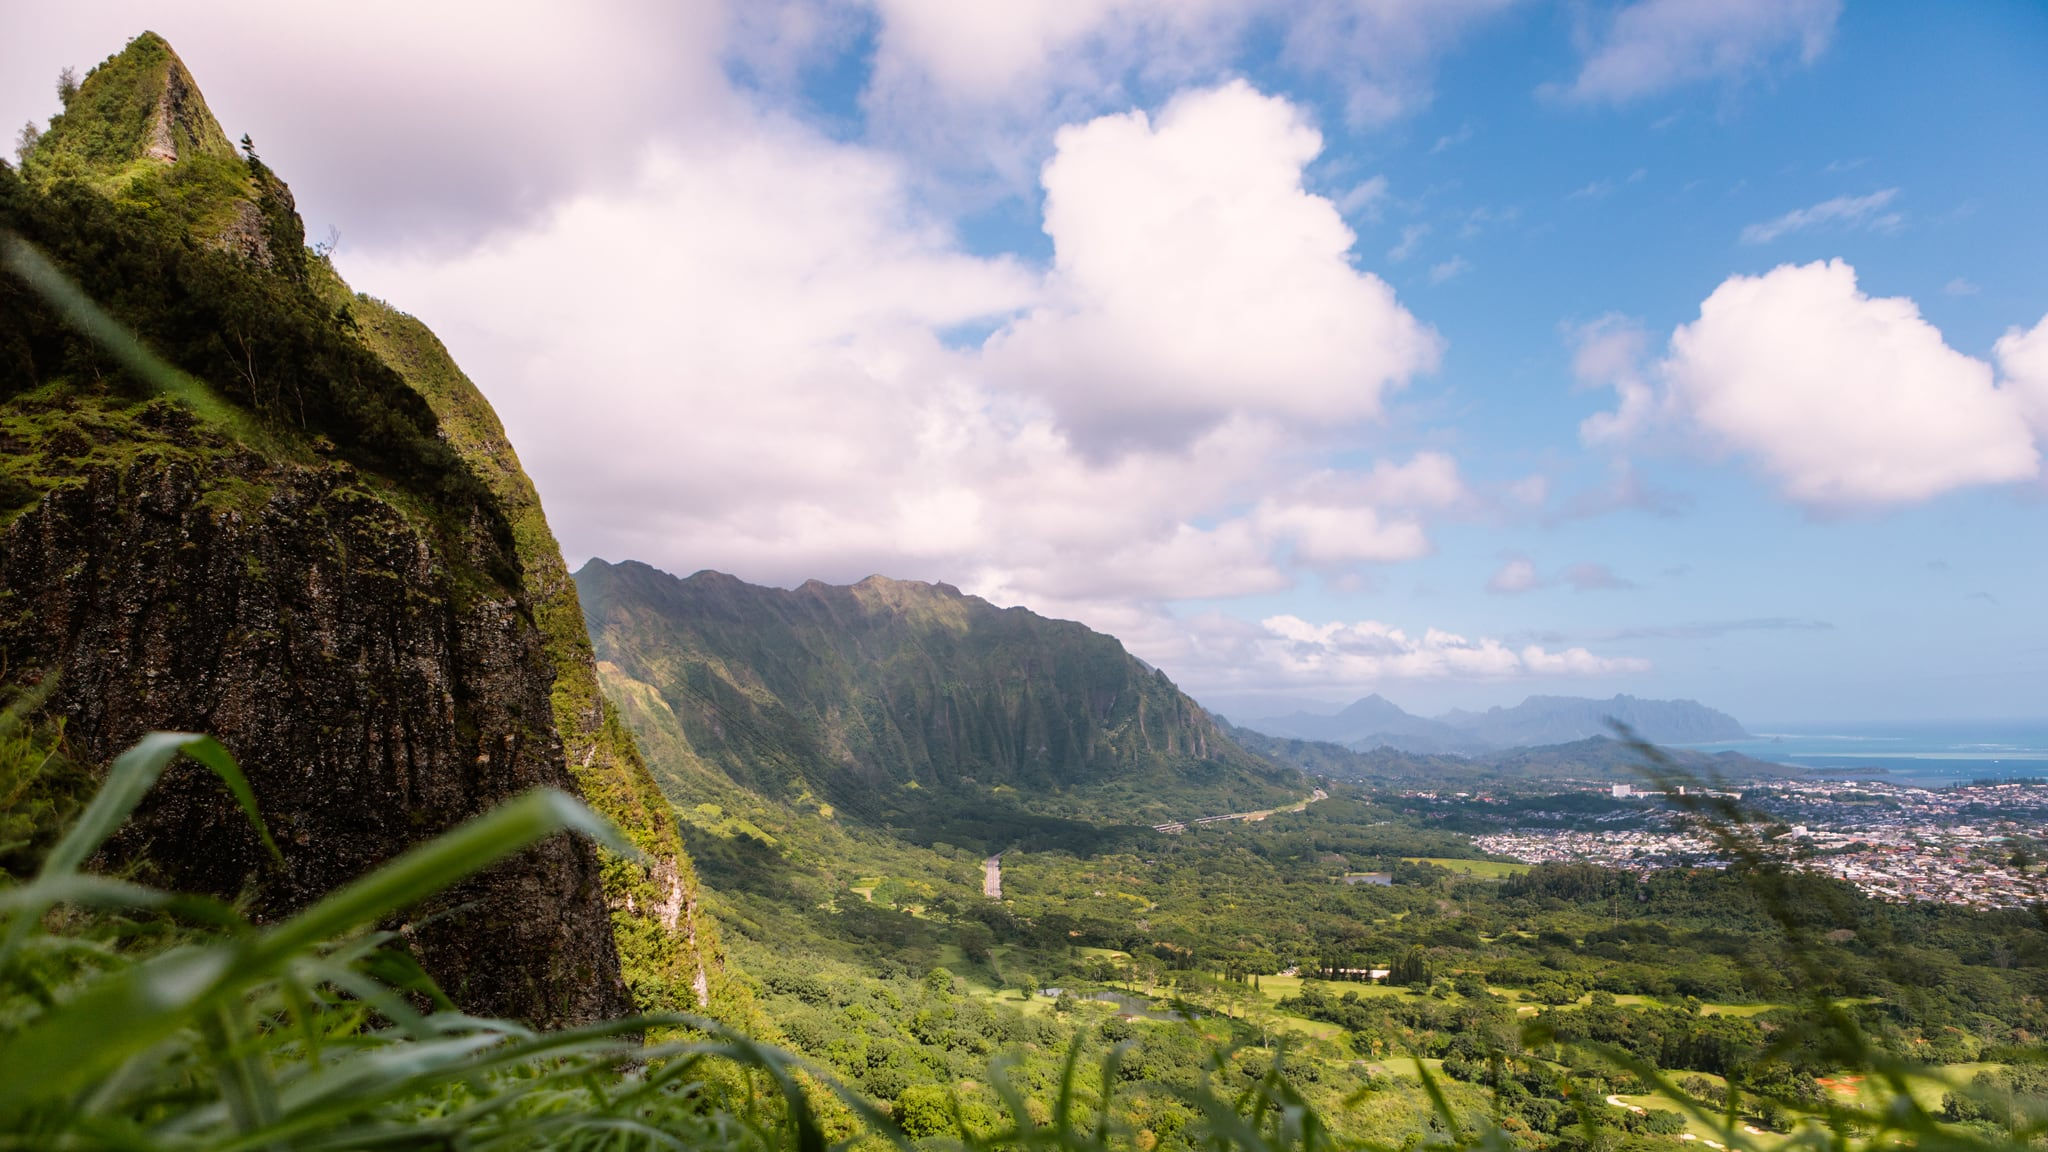 Tropical forests on mountains overseeing a lush valley